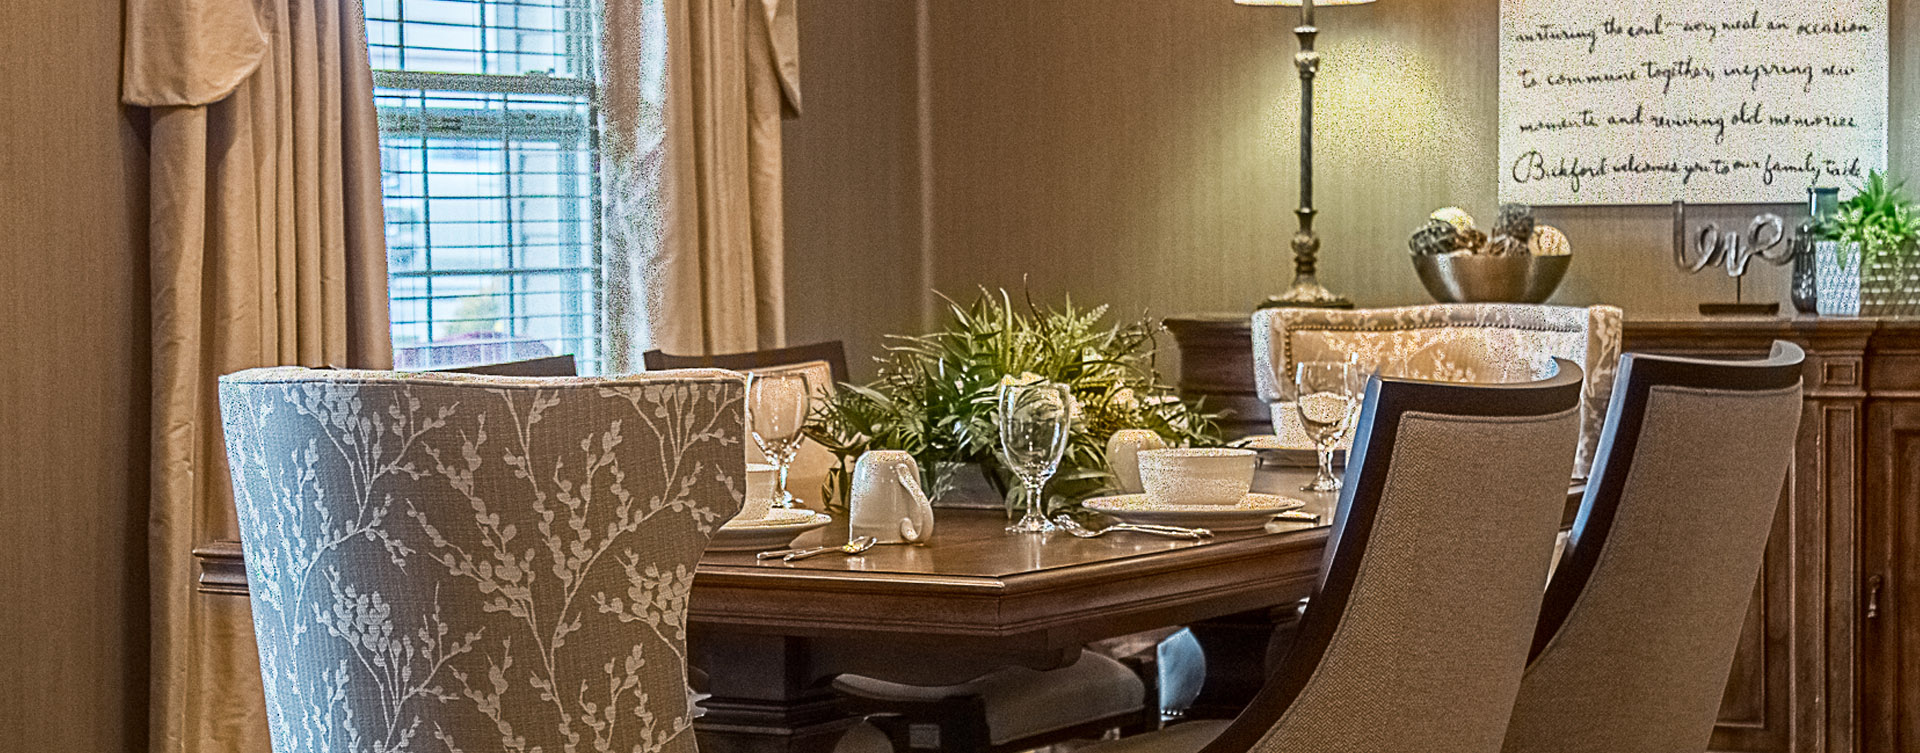 Food is best when shared with family and friends in the private dining room at Bickford of Davenport